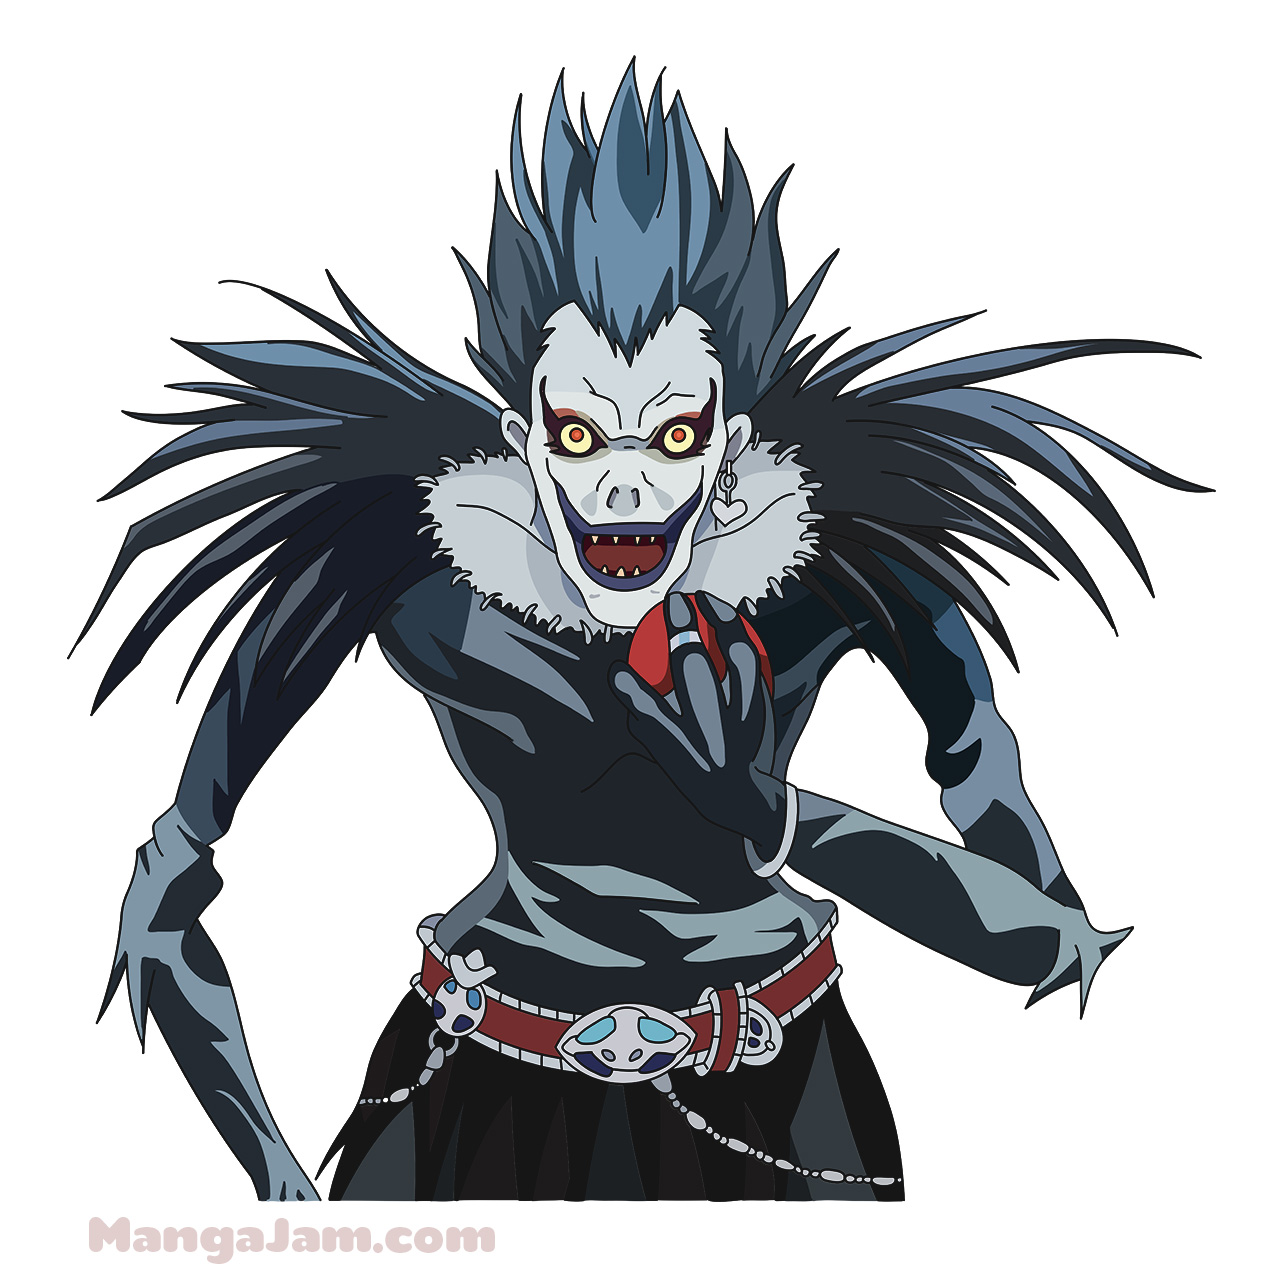 How to Draw Ryuk from Death Note - Mangajam.com